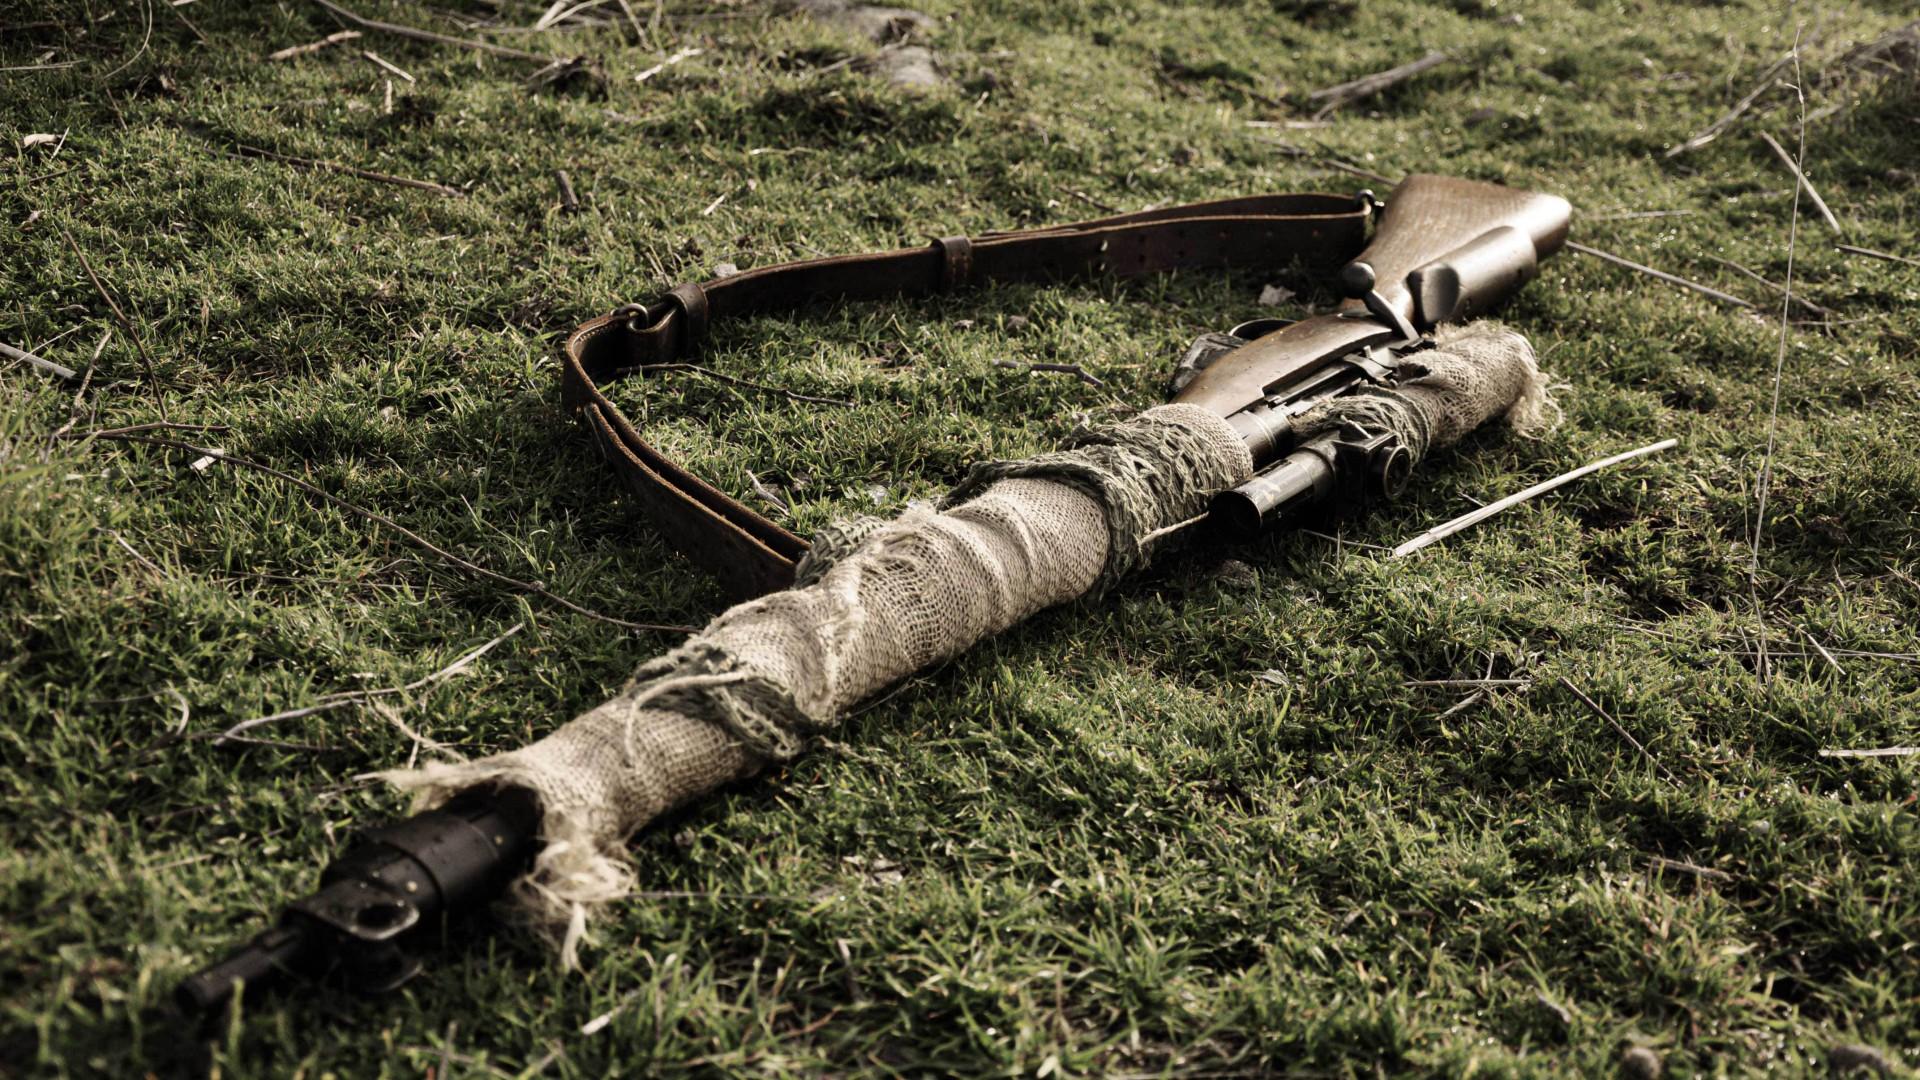 Lee-Enfield, Lee Enfield, sniper rifle, British Army, camo (horizontal)